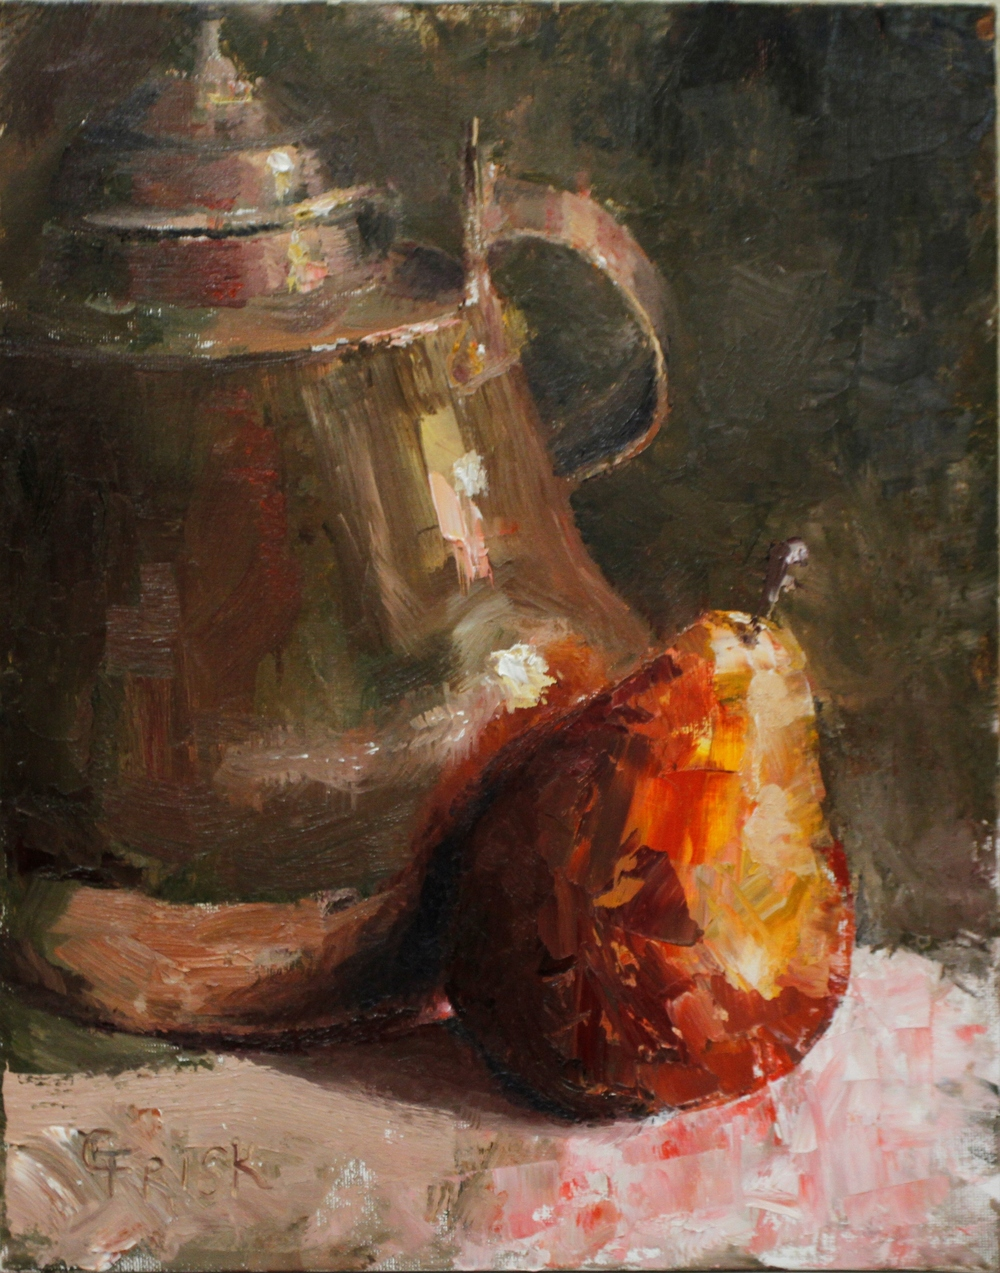 Copper Pot and Pear May 2013 178.JPG